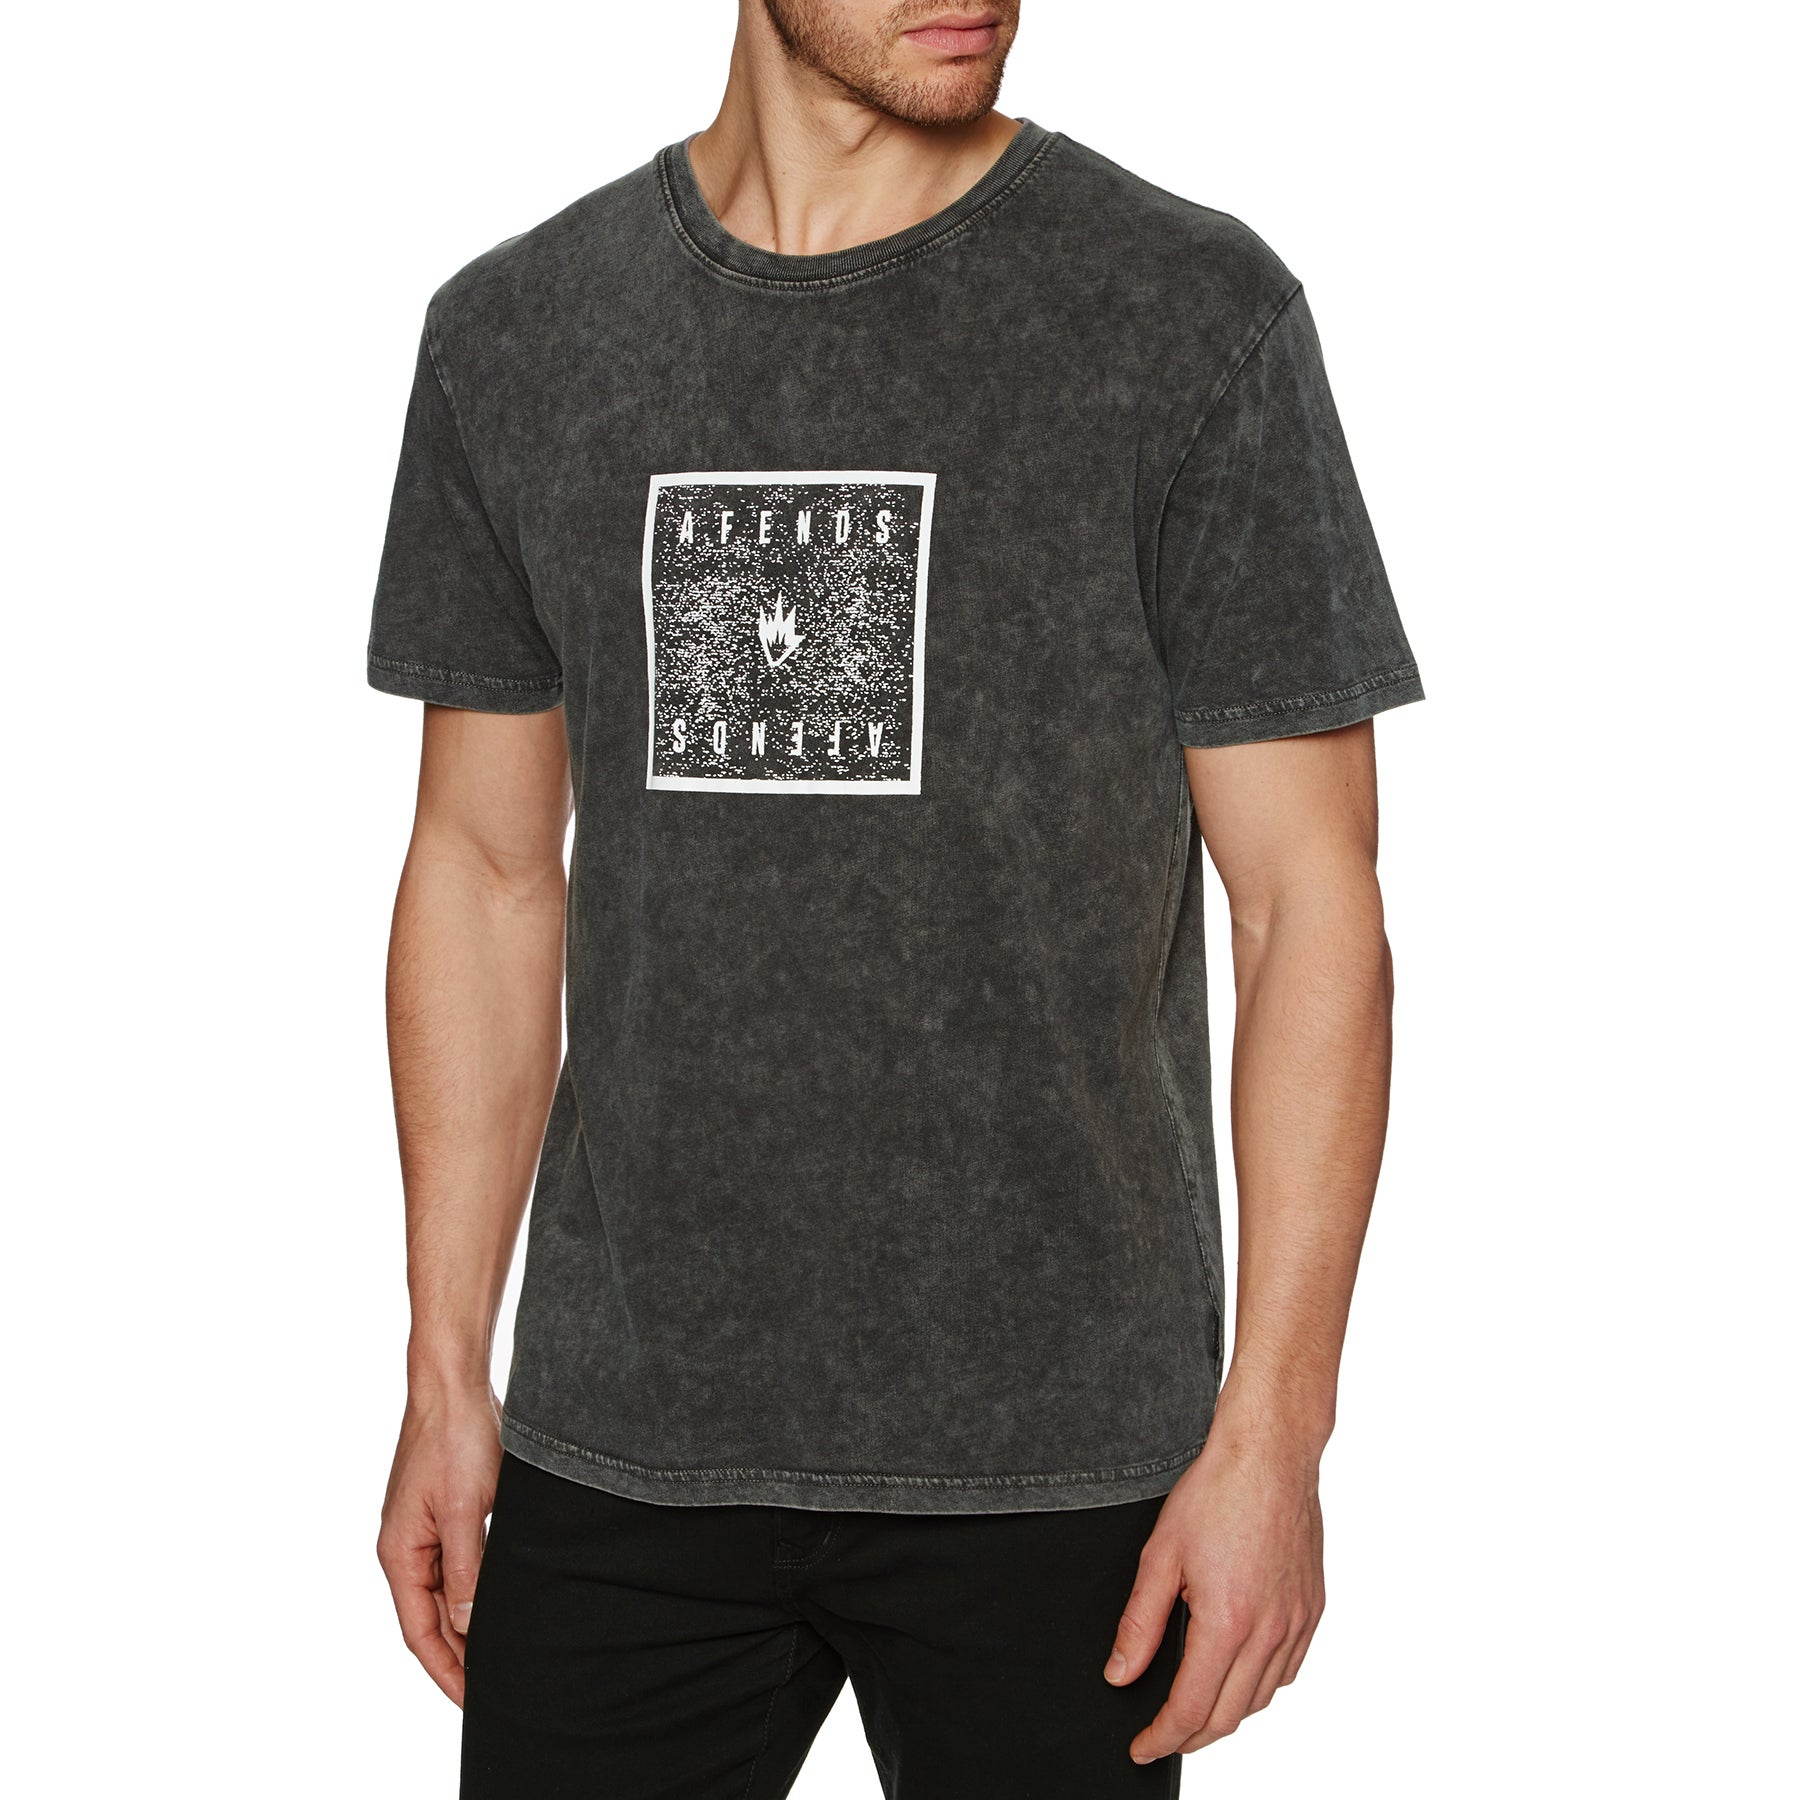 Afends Noise Short Sleeve T-Shirt - Black Acid Wash